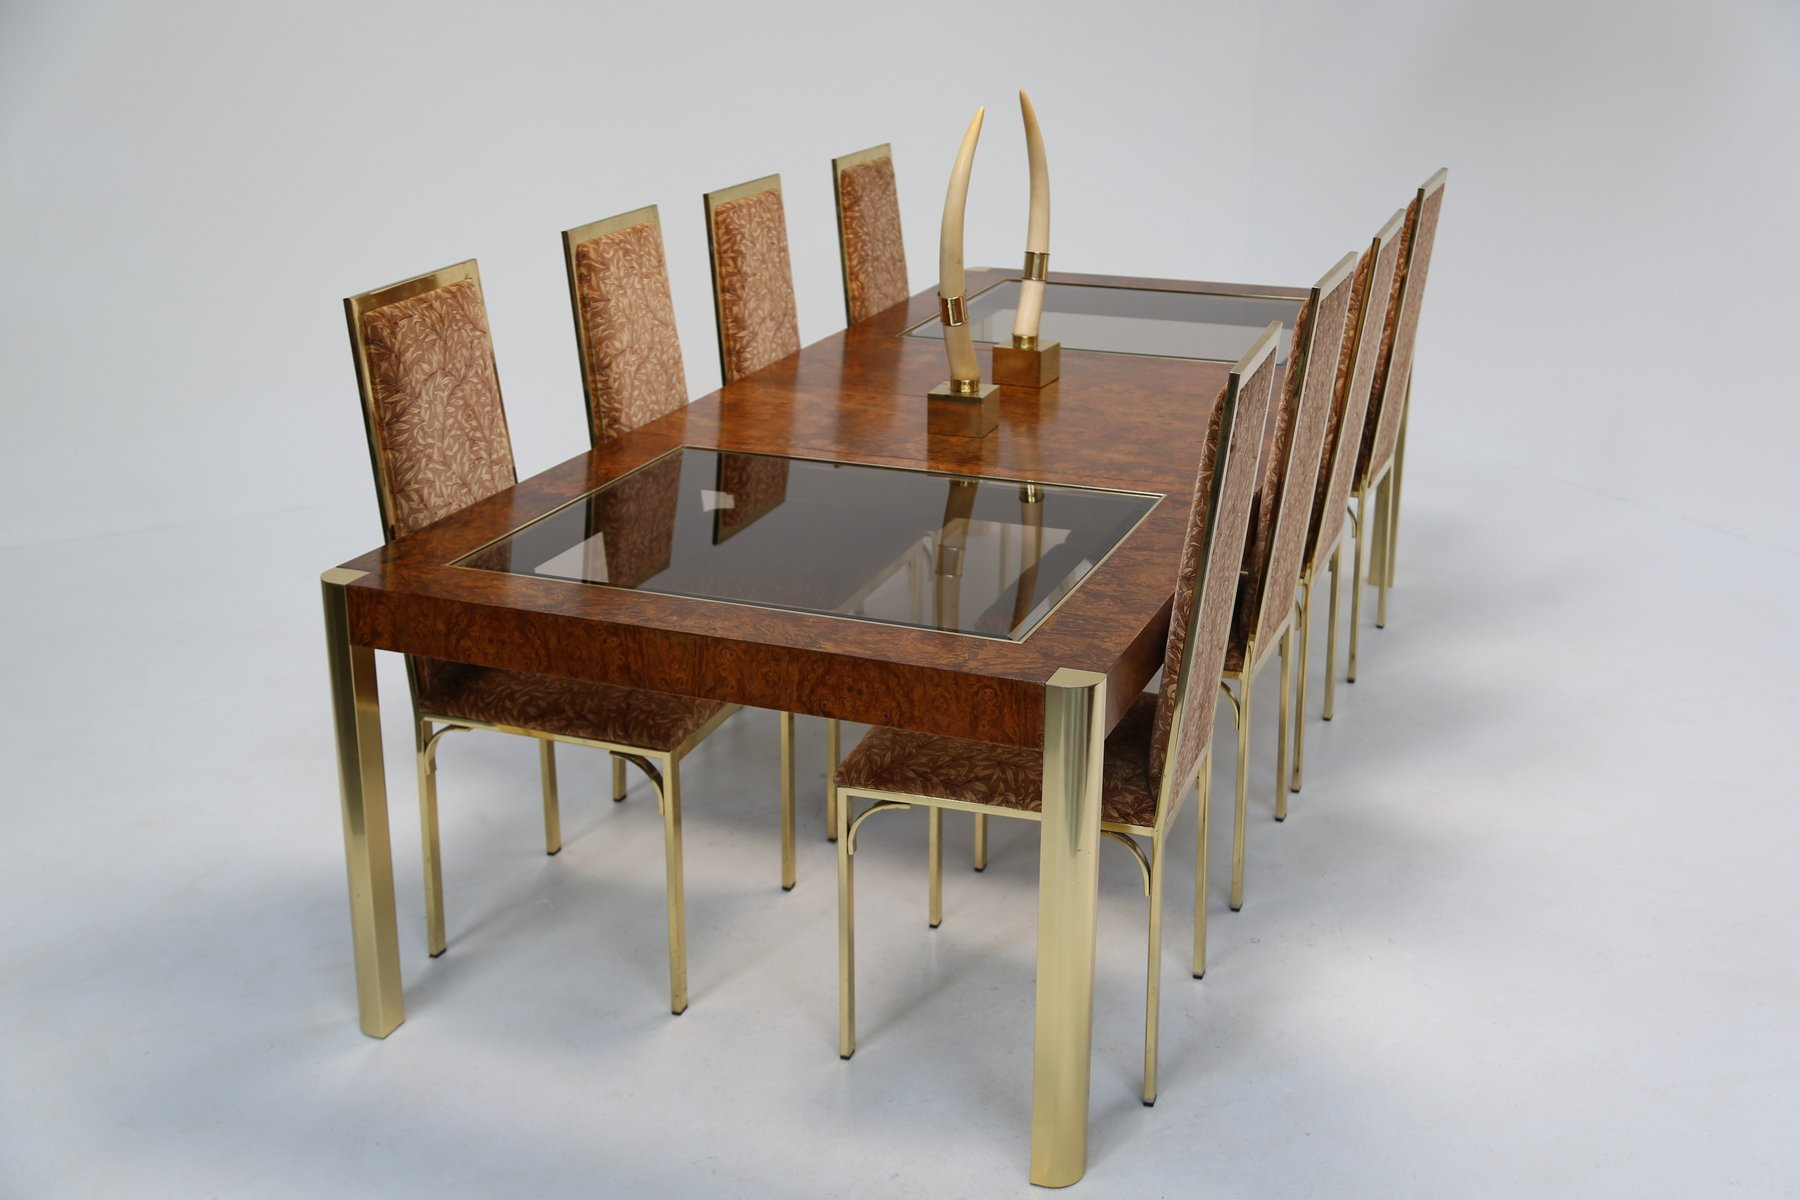 Burl Brass Glass Dining Table from Century Furniture 1970s for